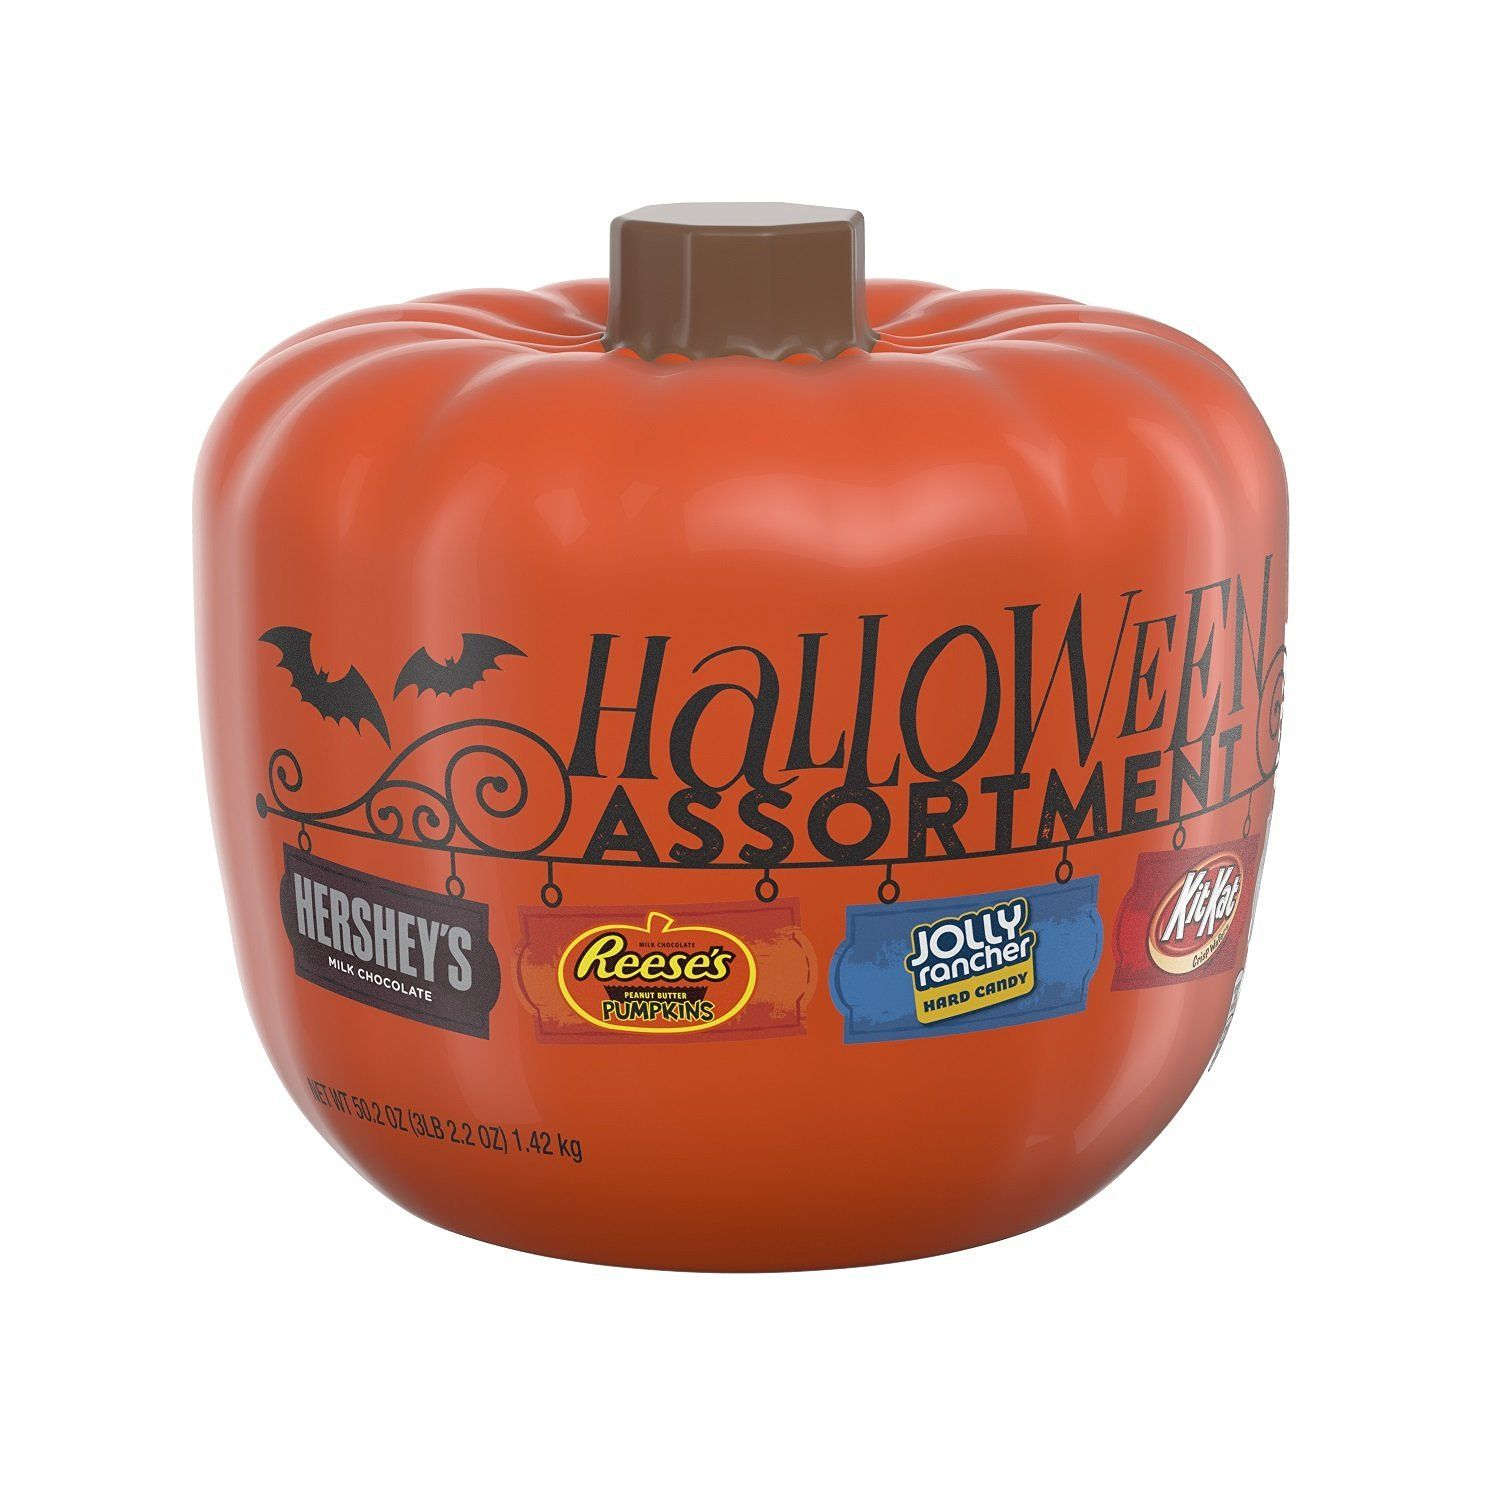 HERSHEY\u0027S Halloween Assortment Pumpkin Bowl (502-Ounce) \u003e\u003e\u003e Check - Homemade Halloween Decorations Pinterest